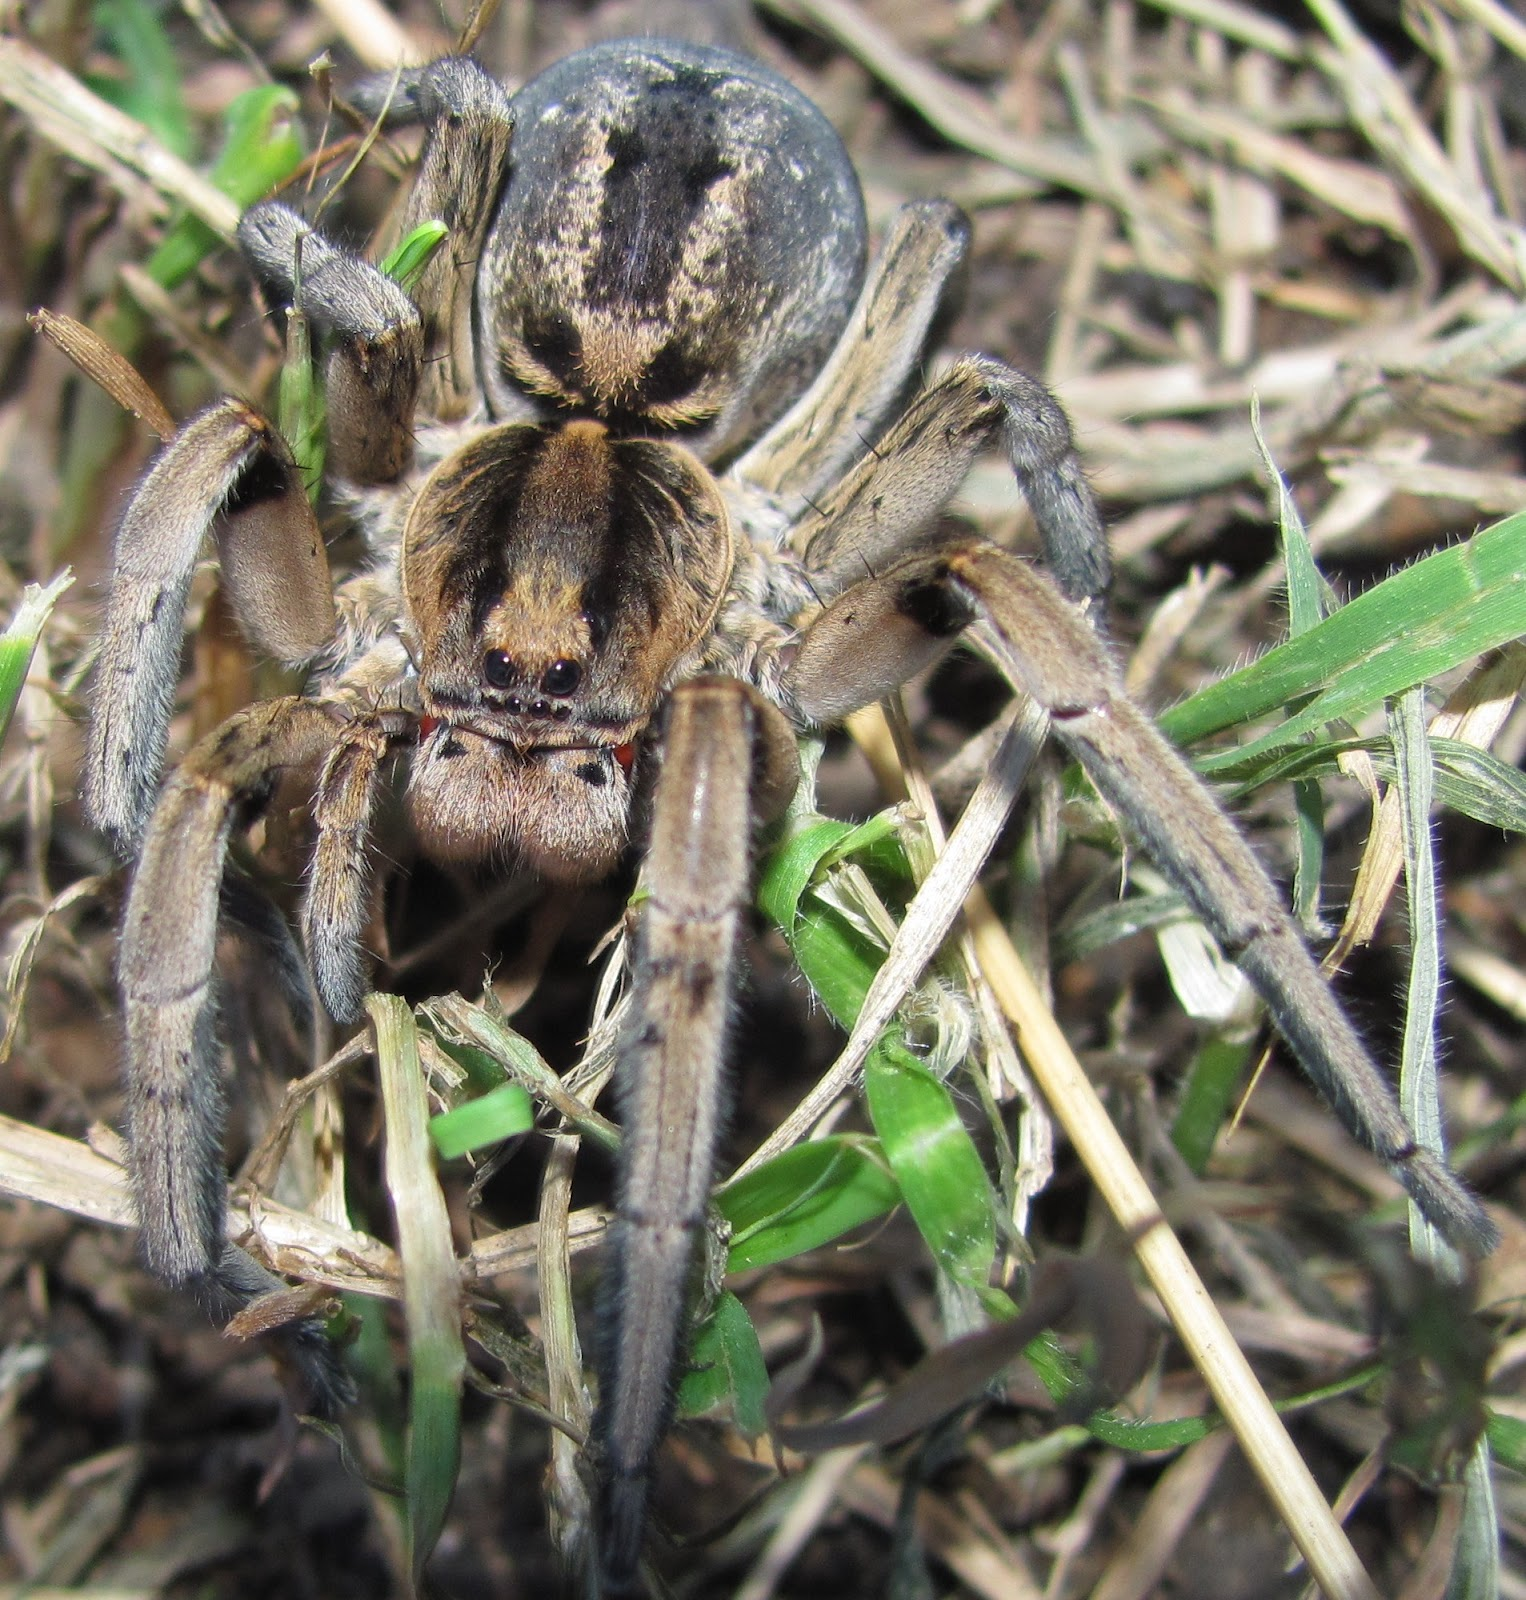 How long do wolf spiders live?